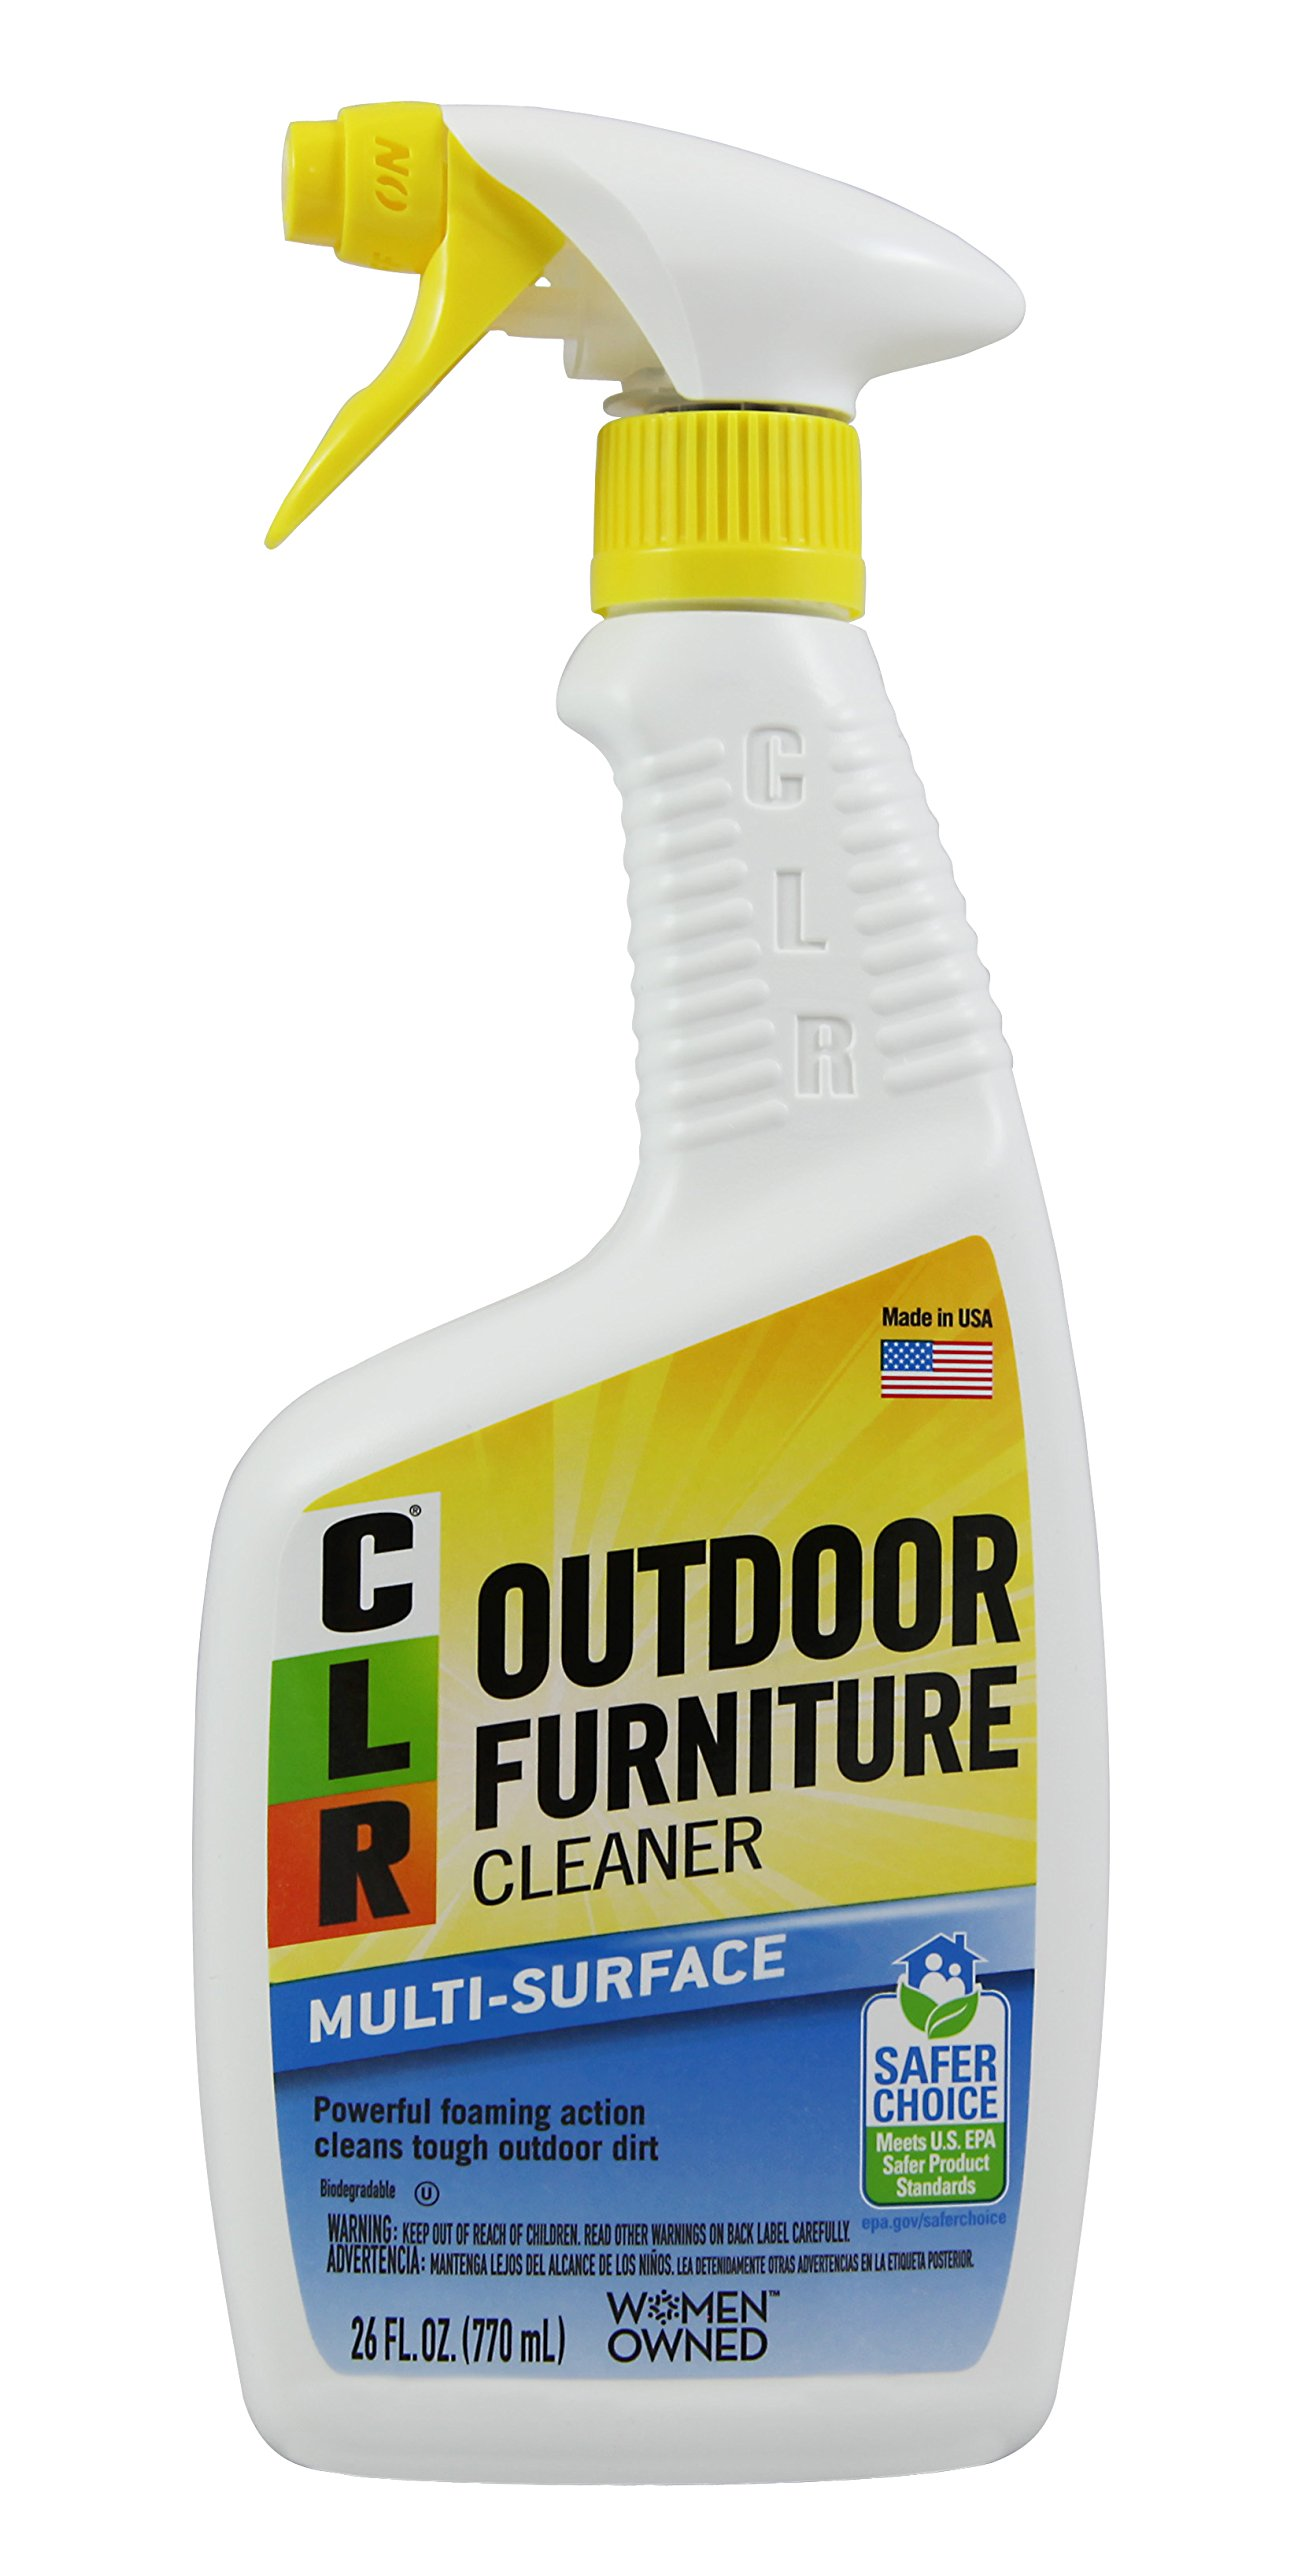 CLR PB-OF-26 Outdoor Furniture Cleaner, 26-Ounce by CLR (Image #1)